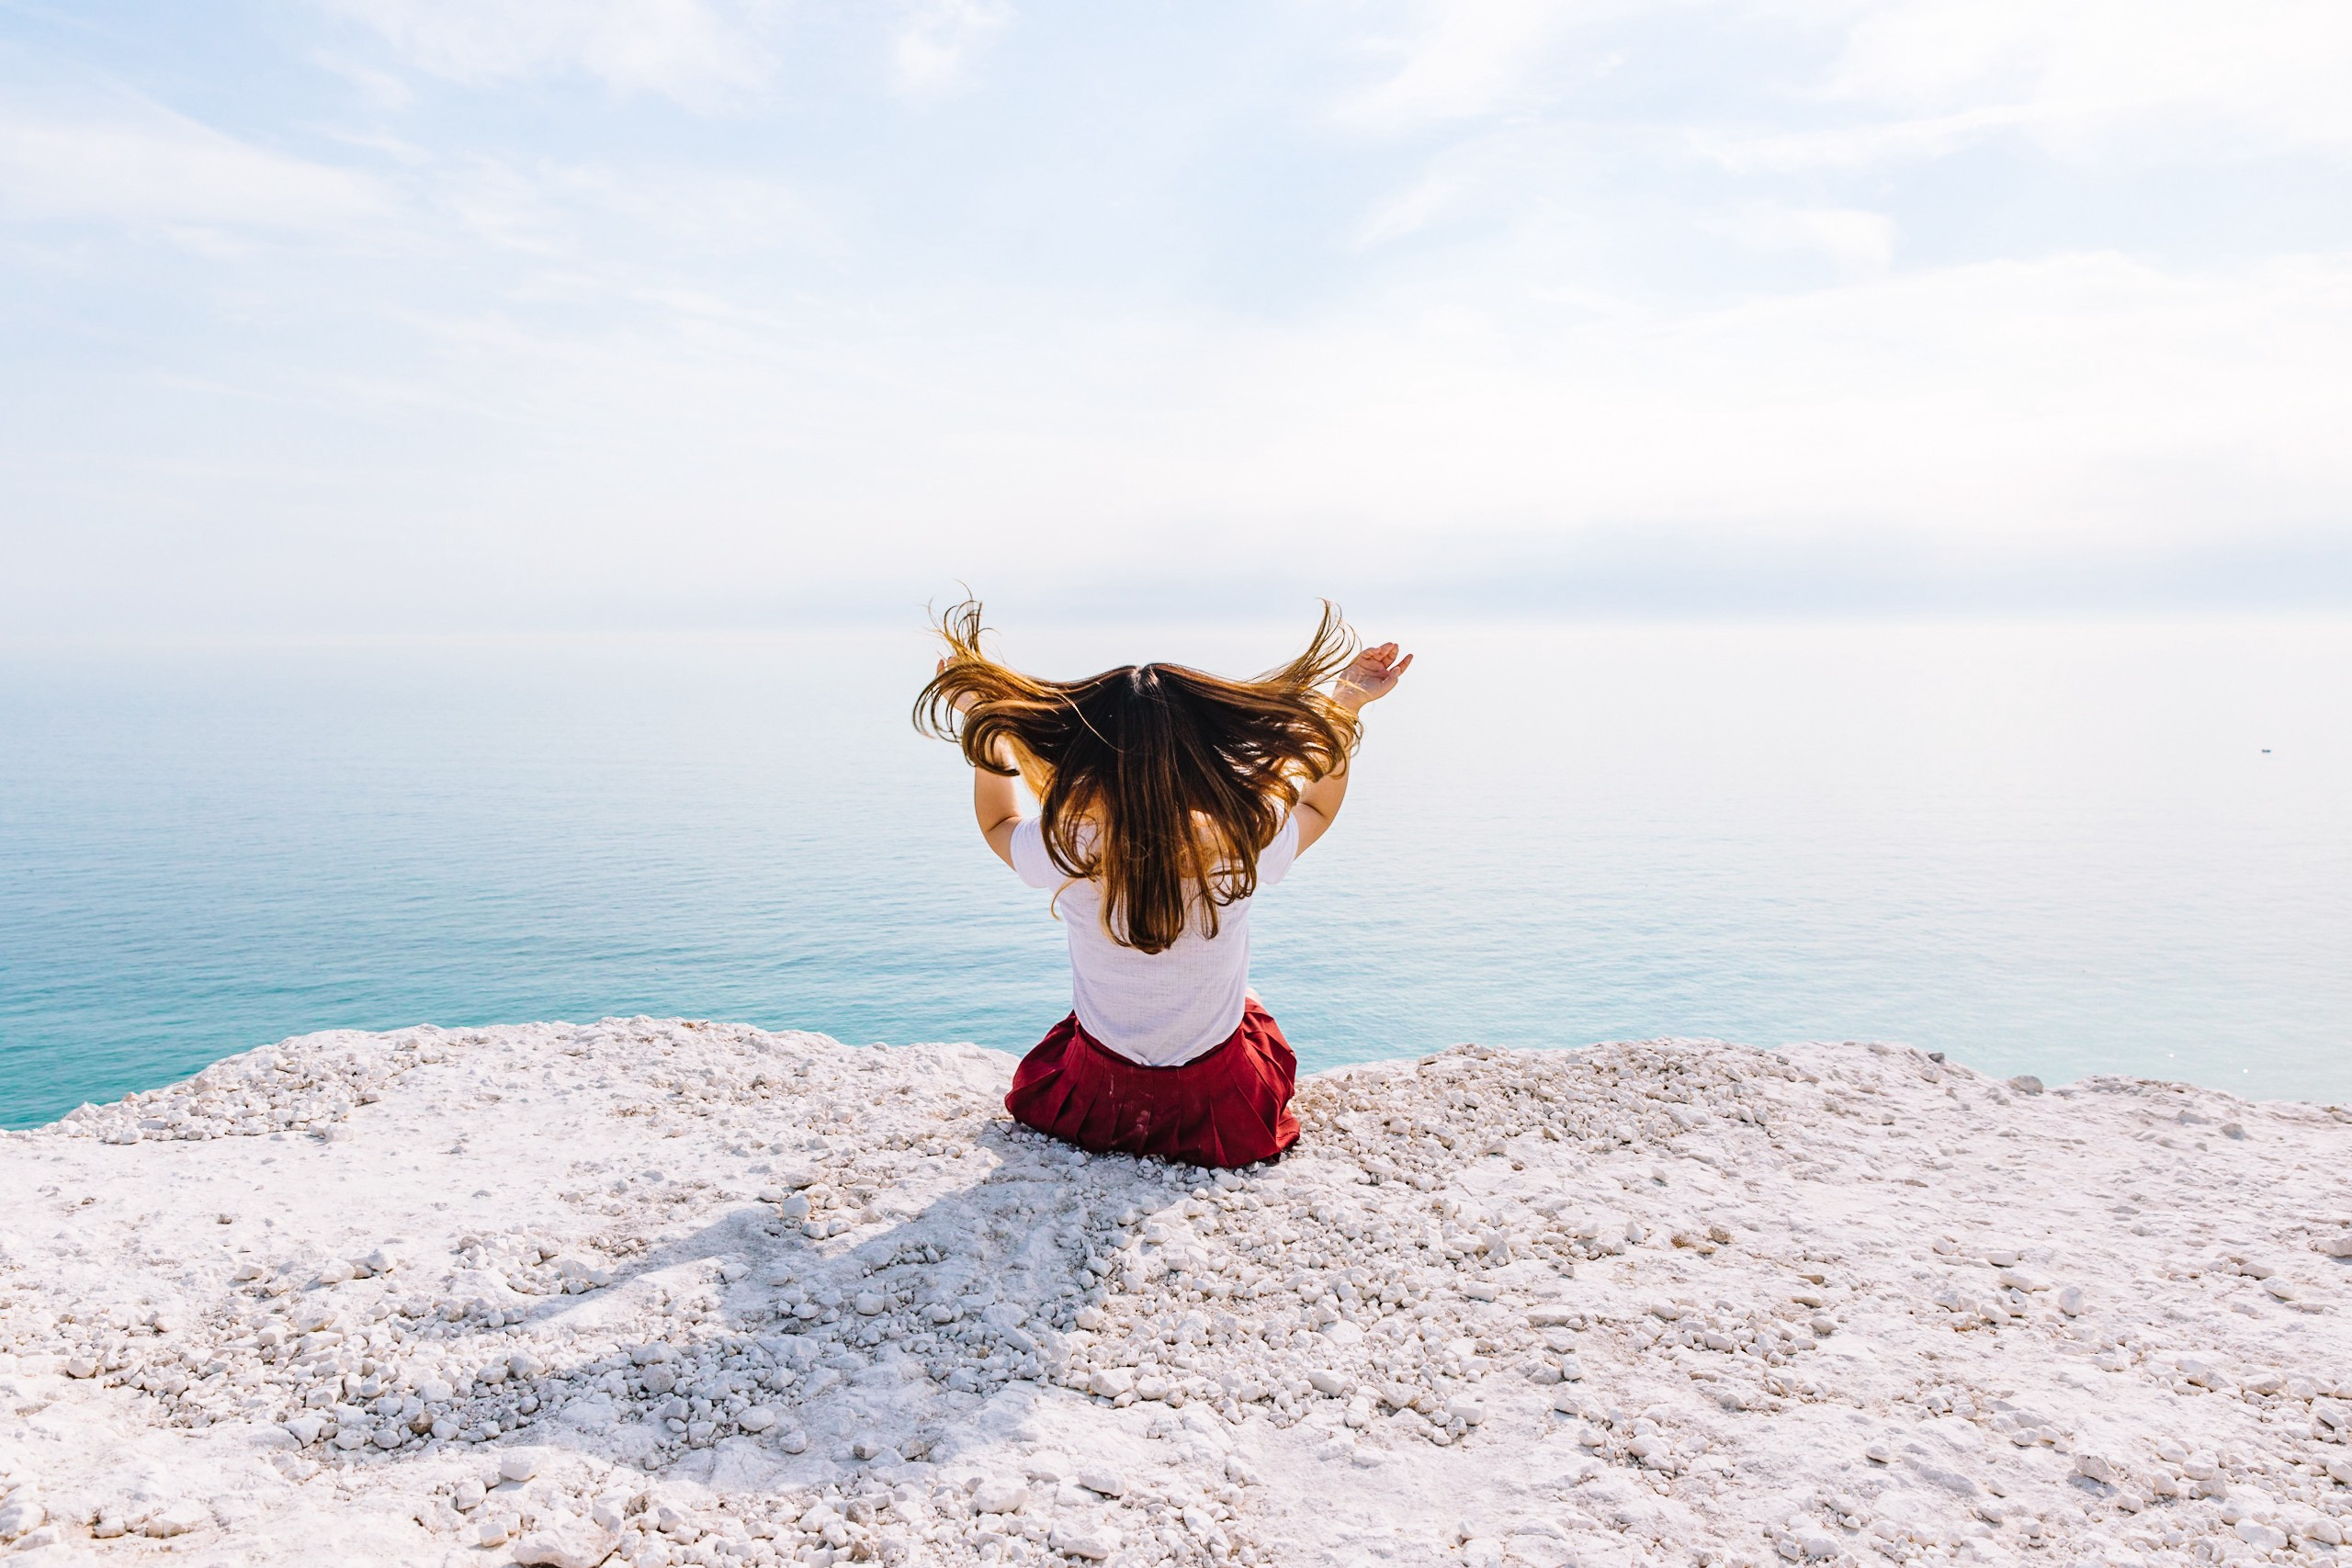 woman sitting on a cliff in front of the ocean throwing her hair